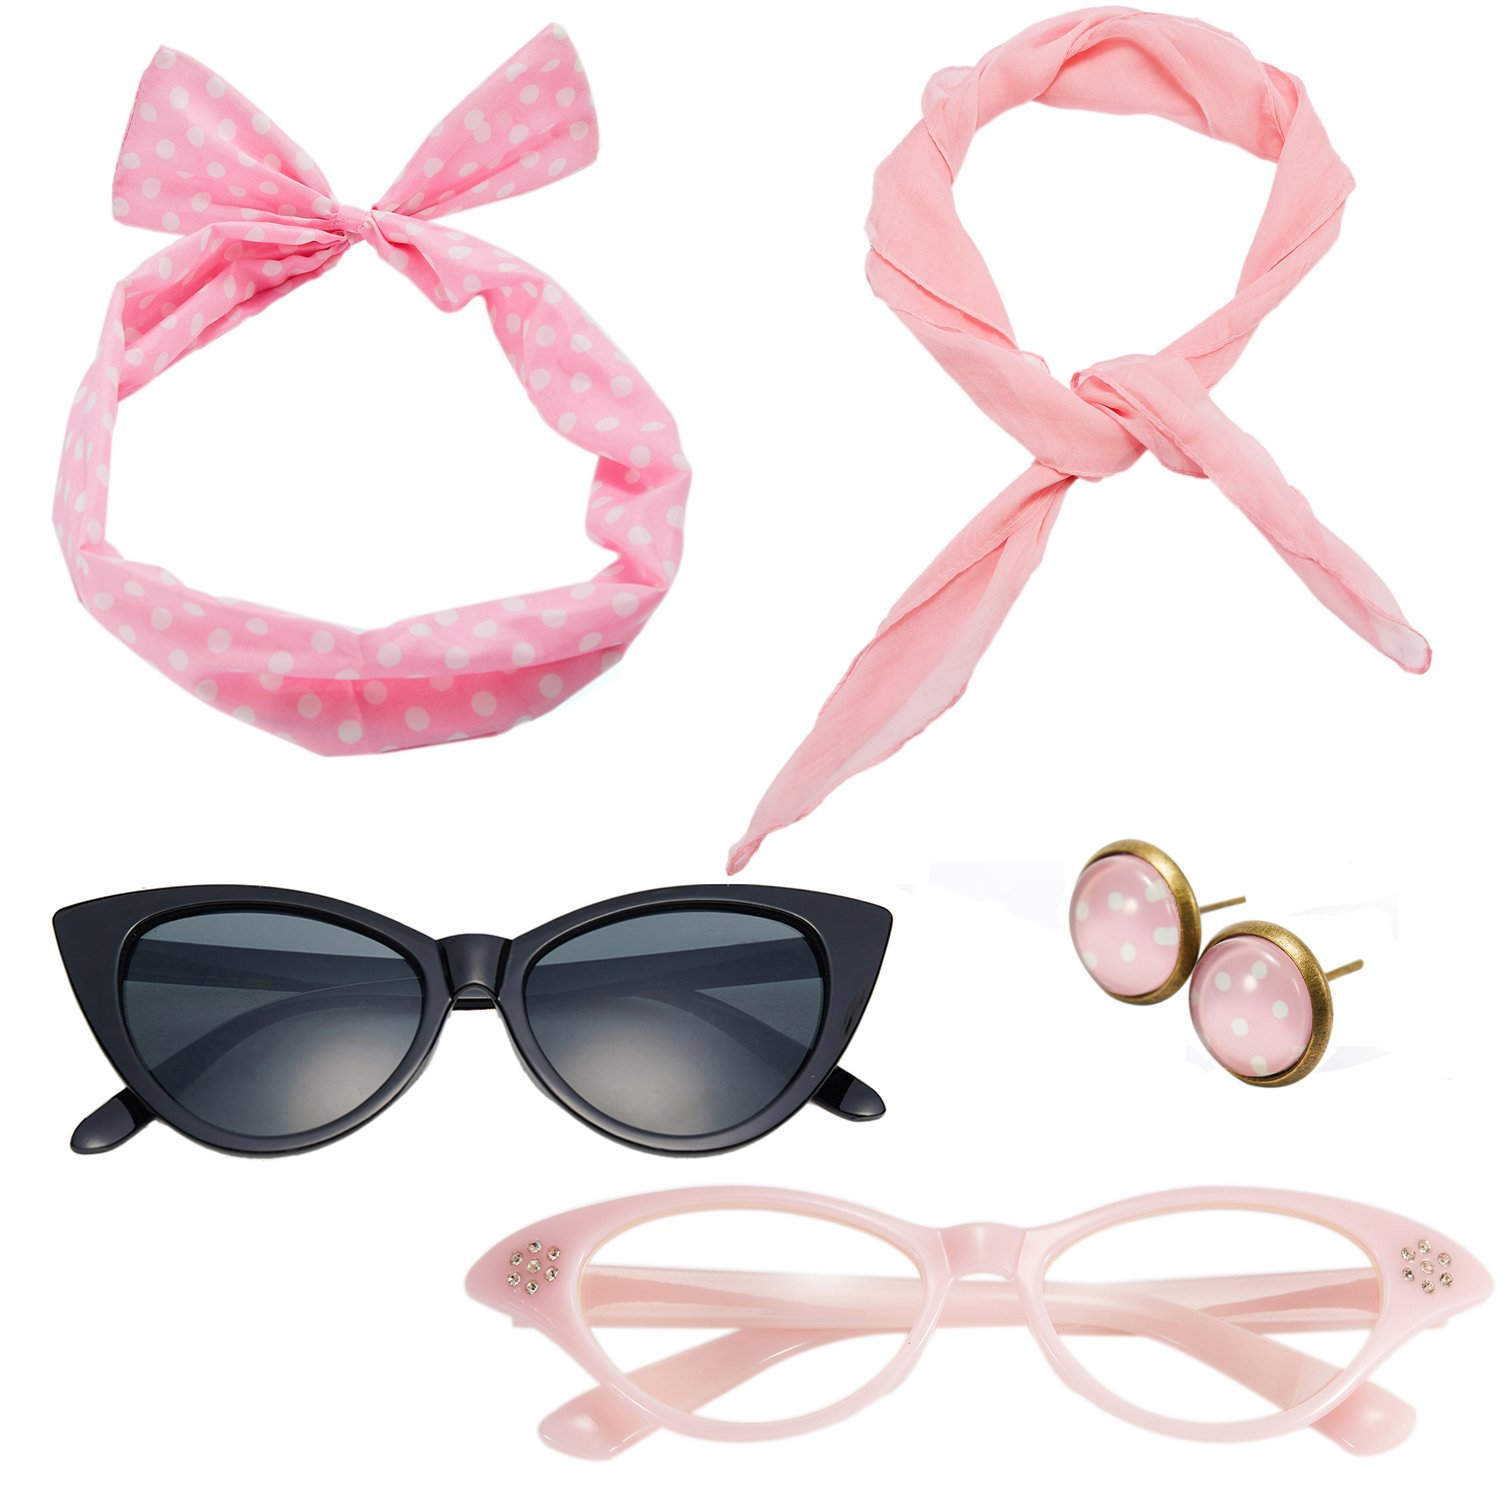 50's Costume Accessories Set Chiffon Scarf Cat Eye Glasses Bandana Tie Headband and Earrings (OneSize, Light Pink)